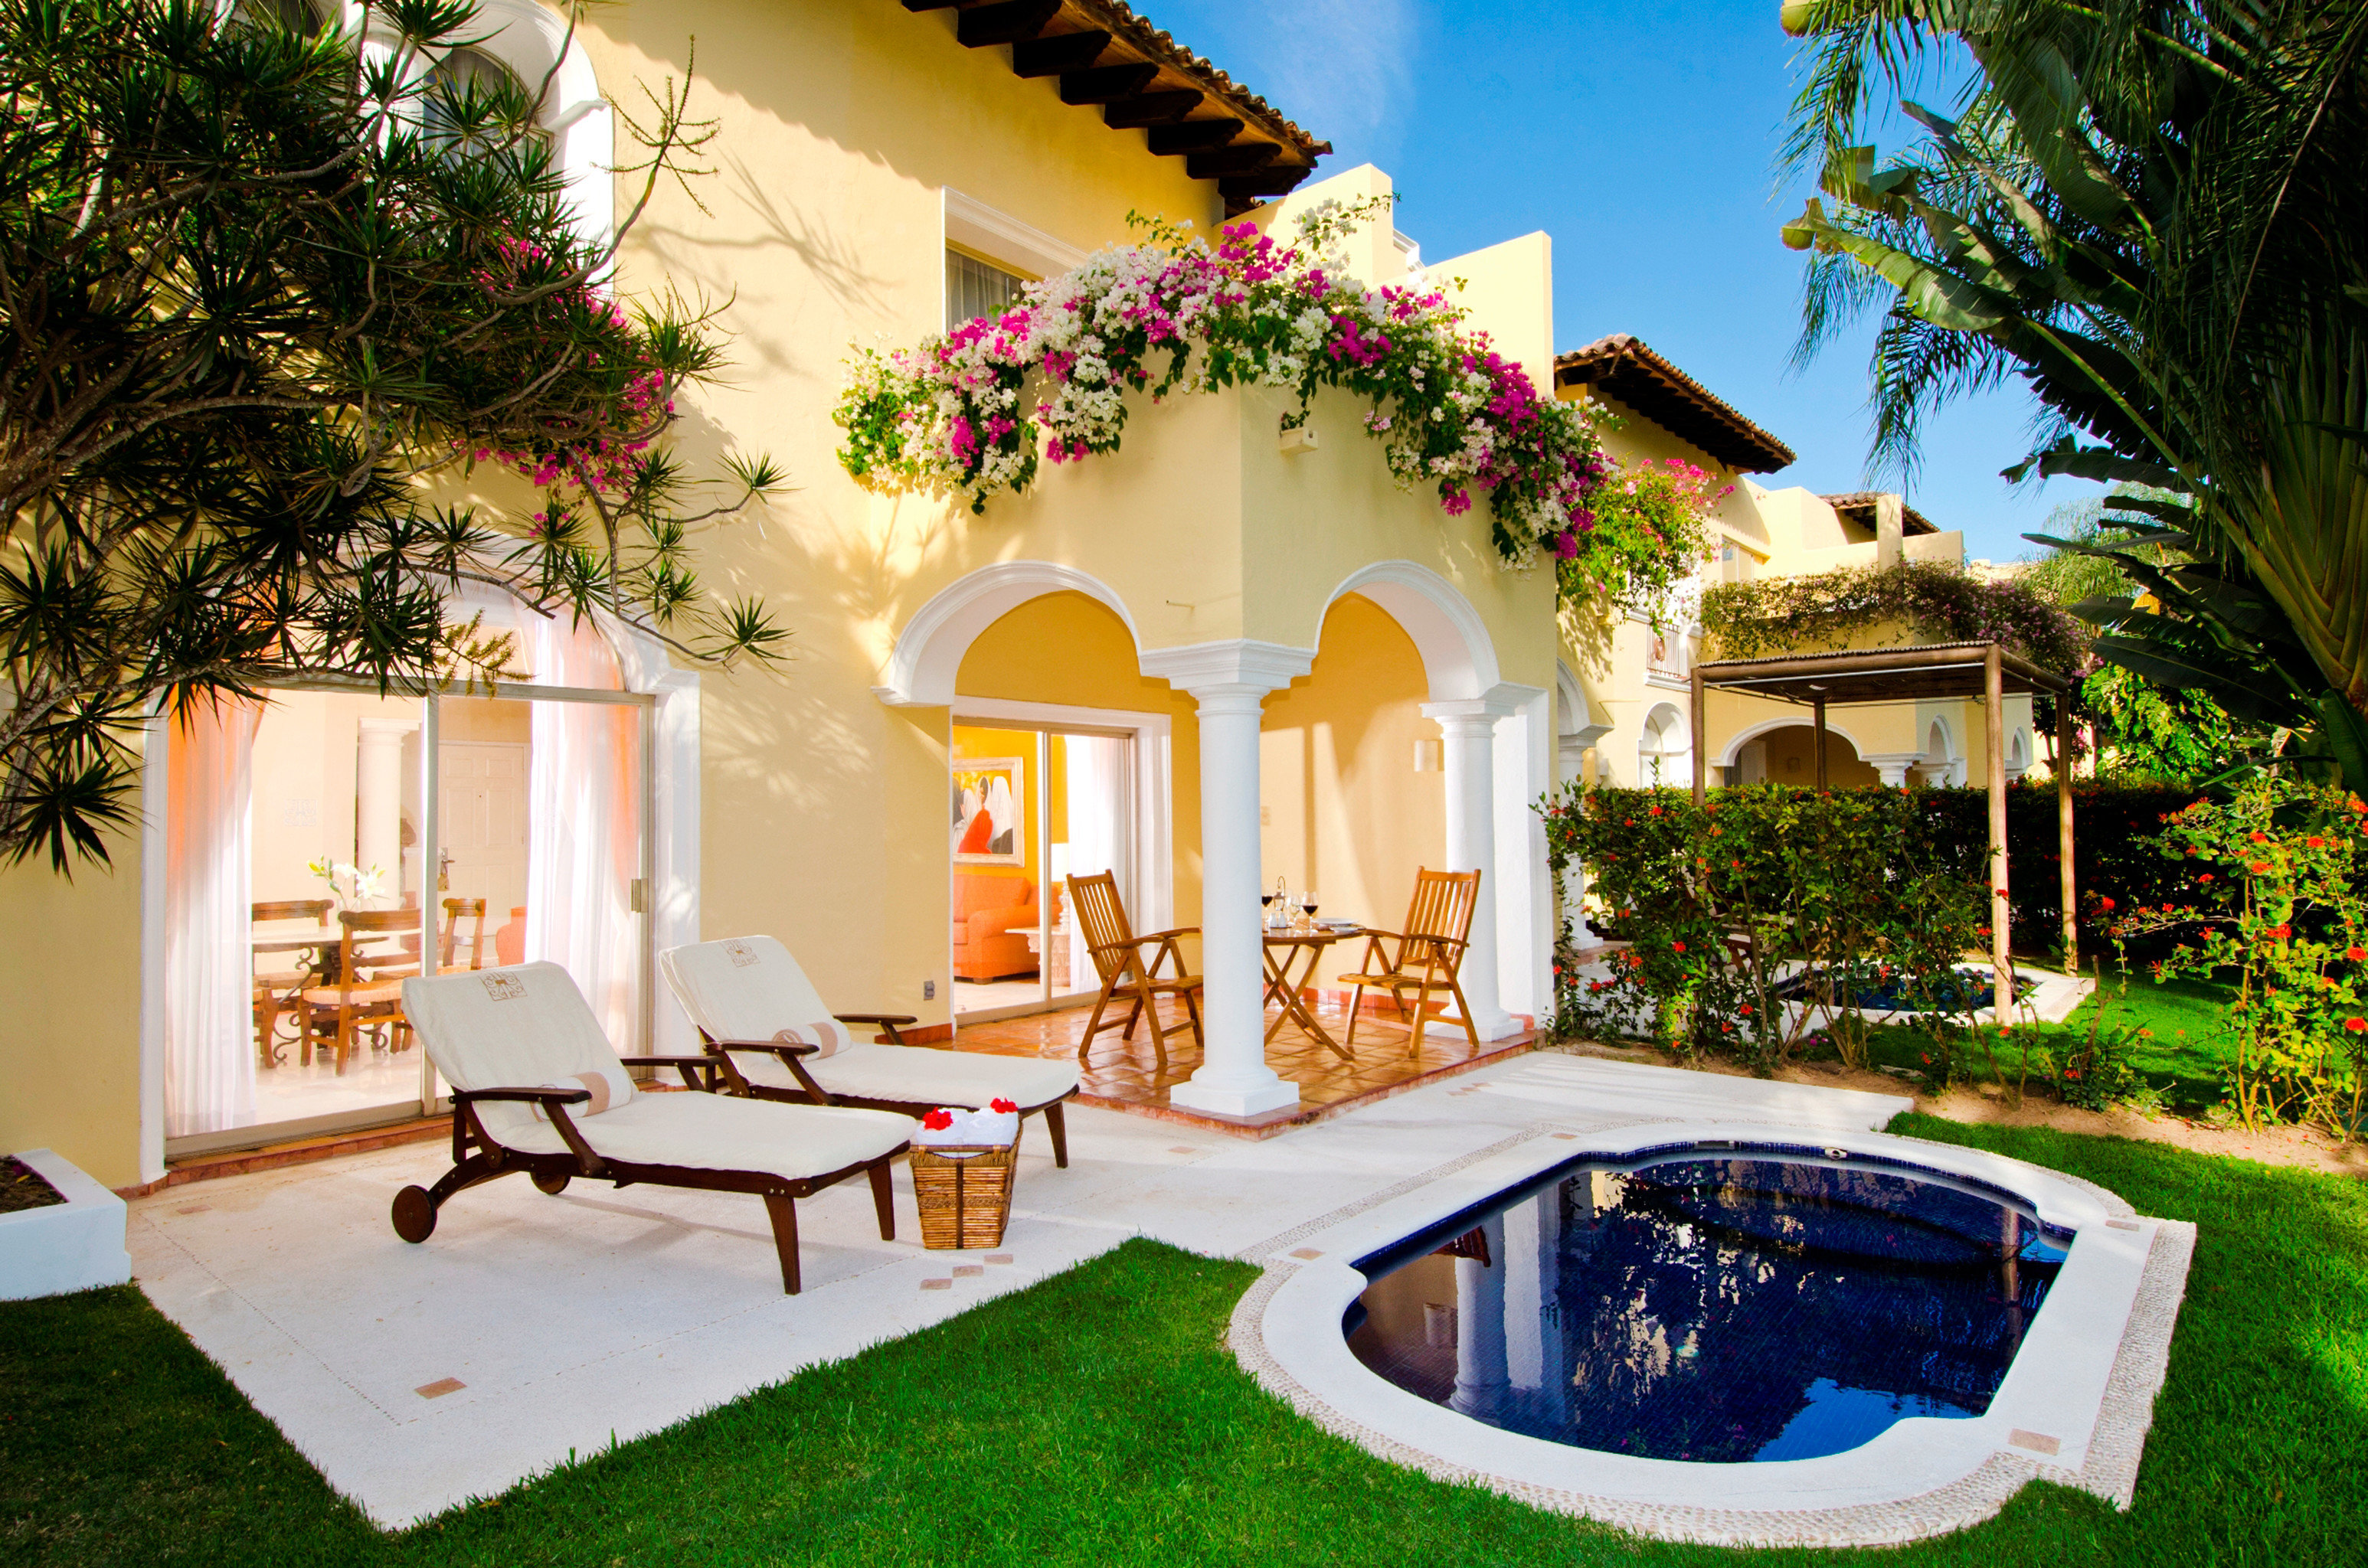 All-Inclusive Resorts Elegant Hotels Lounge Luxury Modern Pool tree grass house property home Villa swimming pool mansion backyard hacienda Resort Courtyard cottage outdoor structure